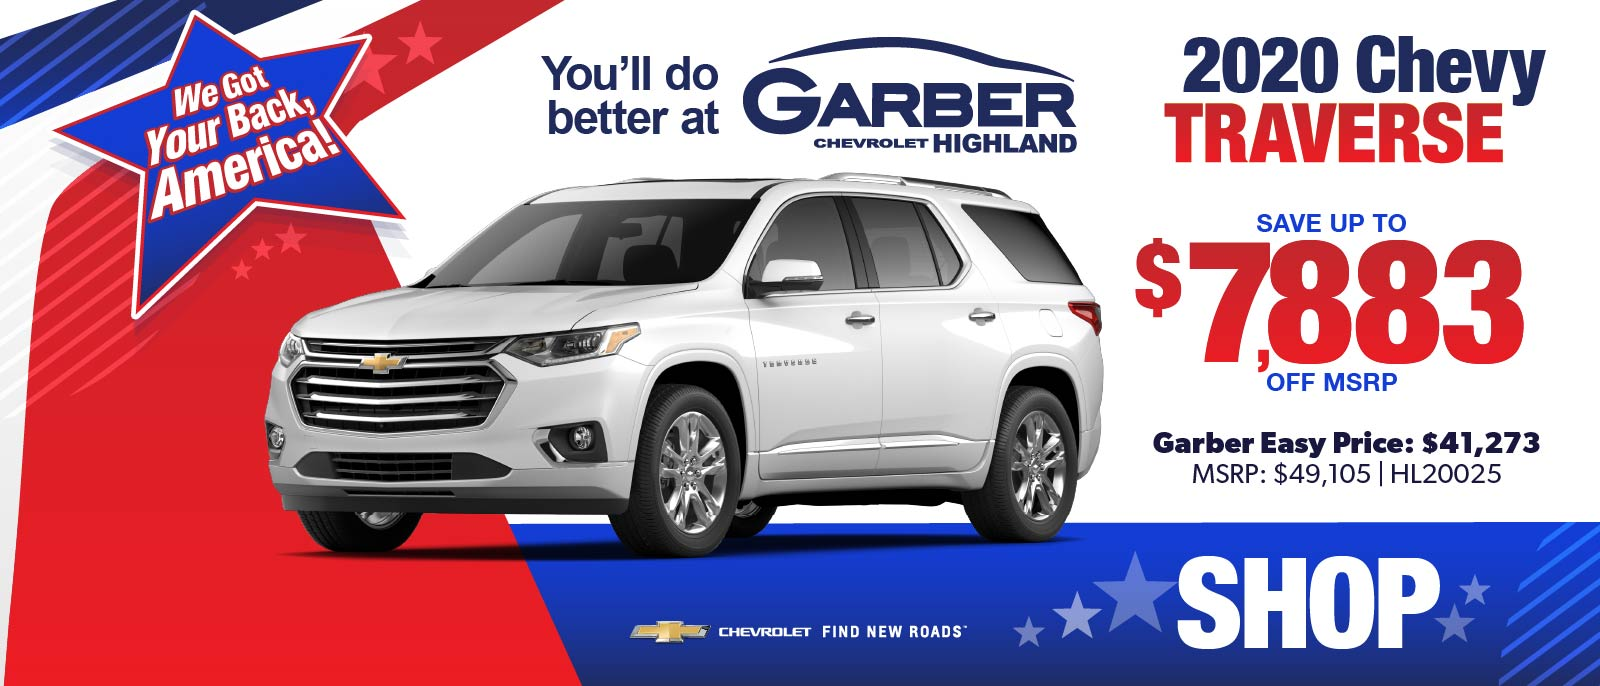 2020 Chevy Traverse - SAVE up to $7883 off MSRP | Garber Easy Price: $41,273 | MSRP $49,105 #HL20025